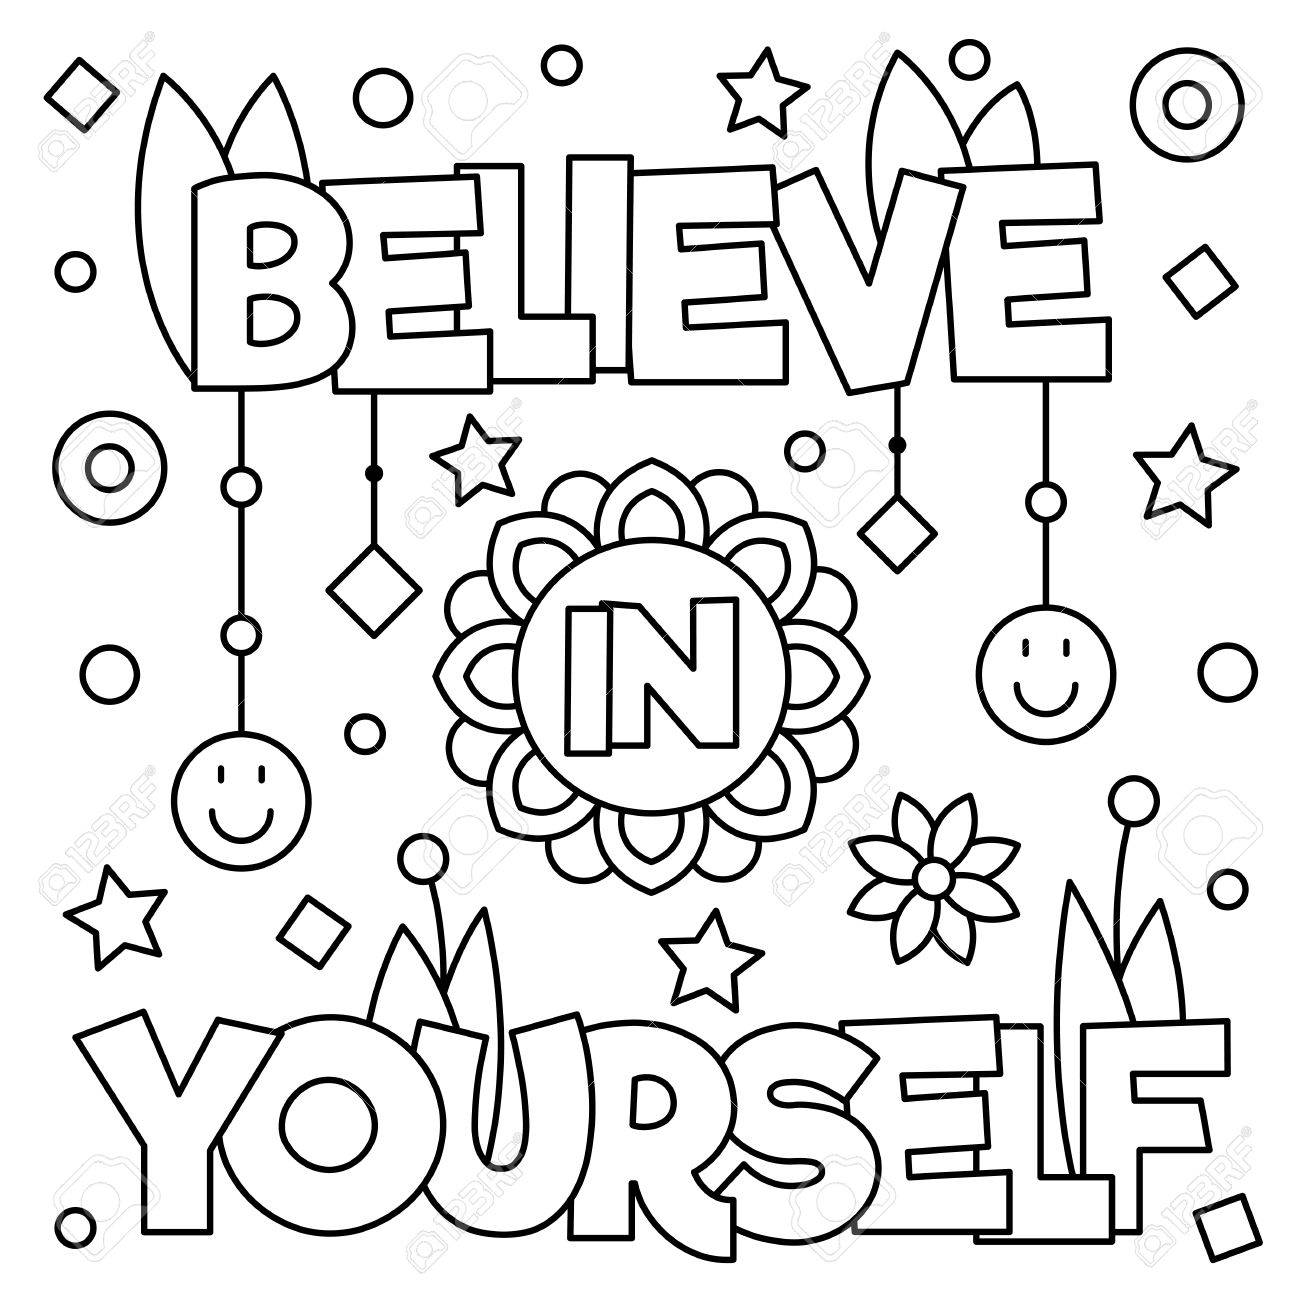 Believe In Yourself Coloring Page Black And White Vector Illustration Royalty Free Cliparts Vectors And Stock Illustration Image 84815104